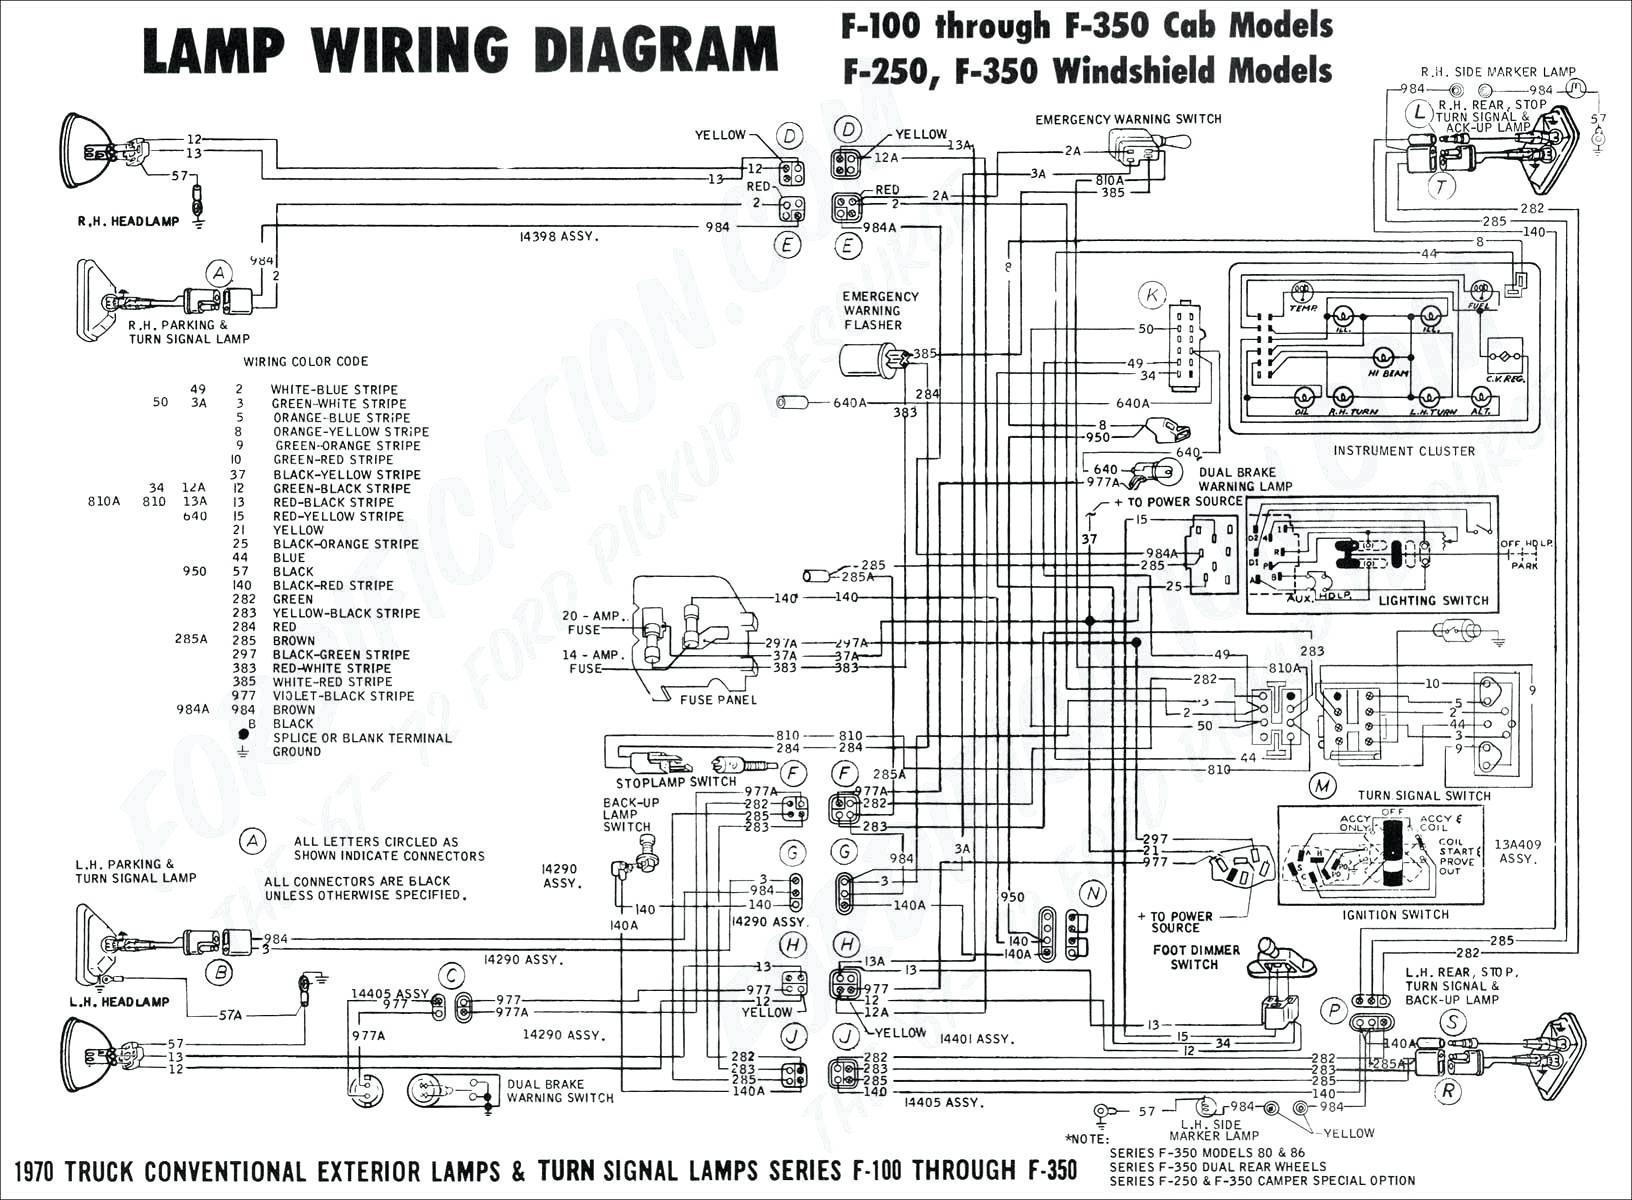 Infiniti Qx4 Engine Diagram Mitsubishi Chariot Wiring Diagram Worksheet and Wiring Diagram • Of Infiniti Qx4 Engine Diagram 2001 Infiniti Qx4 Headlight Wiring Diagram Experts Wiring Diagram •